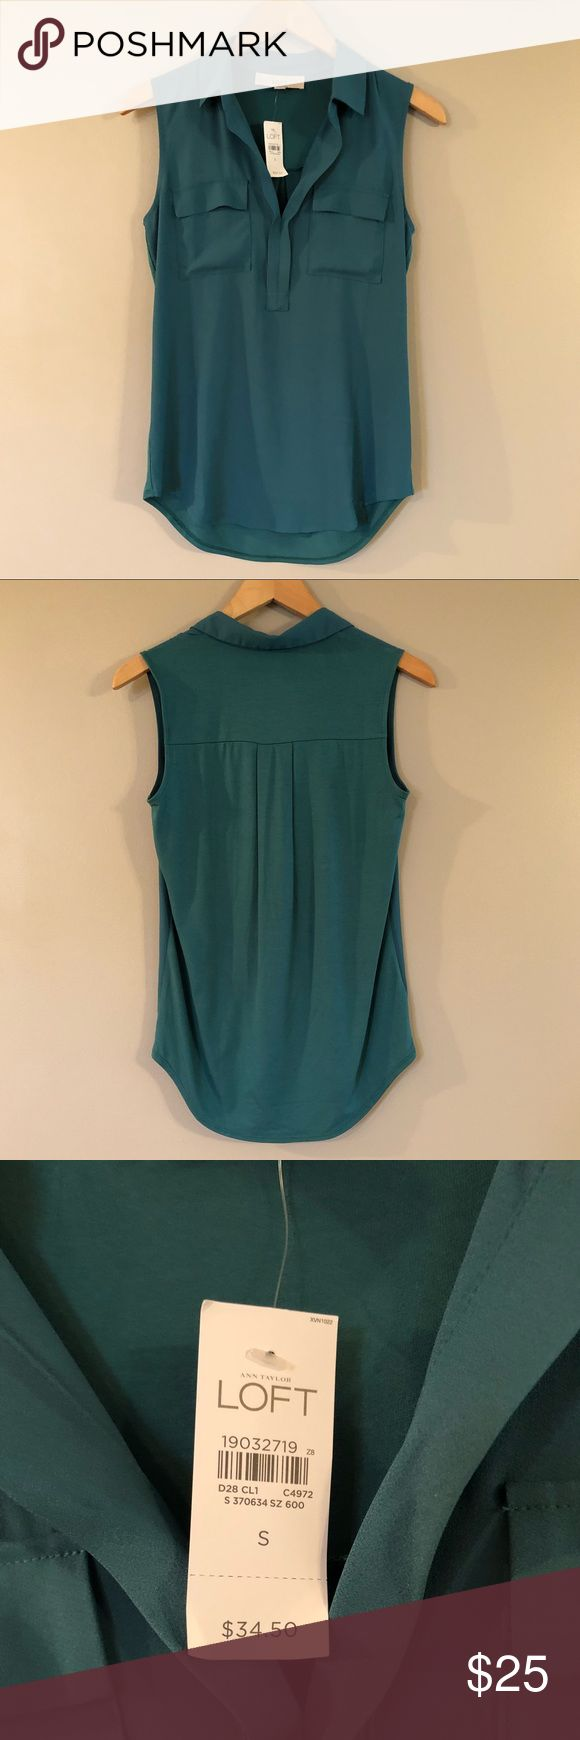 Loft Collared Tank Top - Teal Never worn. New with tags. True to size. Extremely flattering, lightweight tank top/blouse from LOFT. Light Teal color. The front of the top is 100% polyester. The back of the top is made of rayon and spandex - so it still fits loosely, but has ample stretch. Very comfortable. Cute on its own, tucked in, or worn with a thin belt. LOFT Tops Blouses